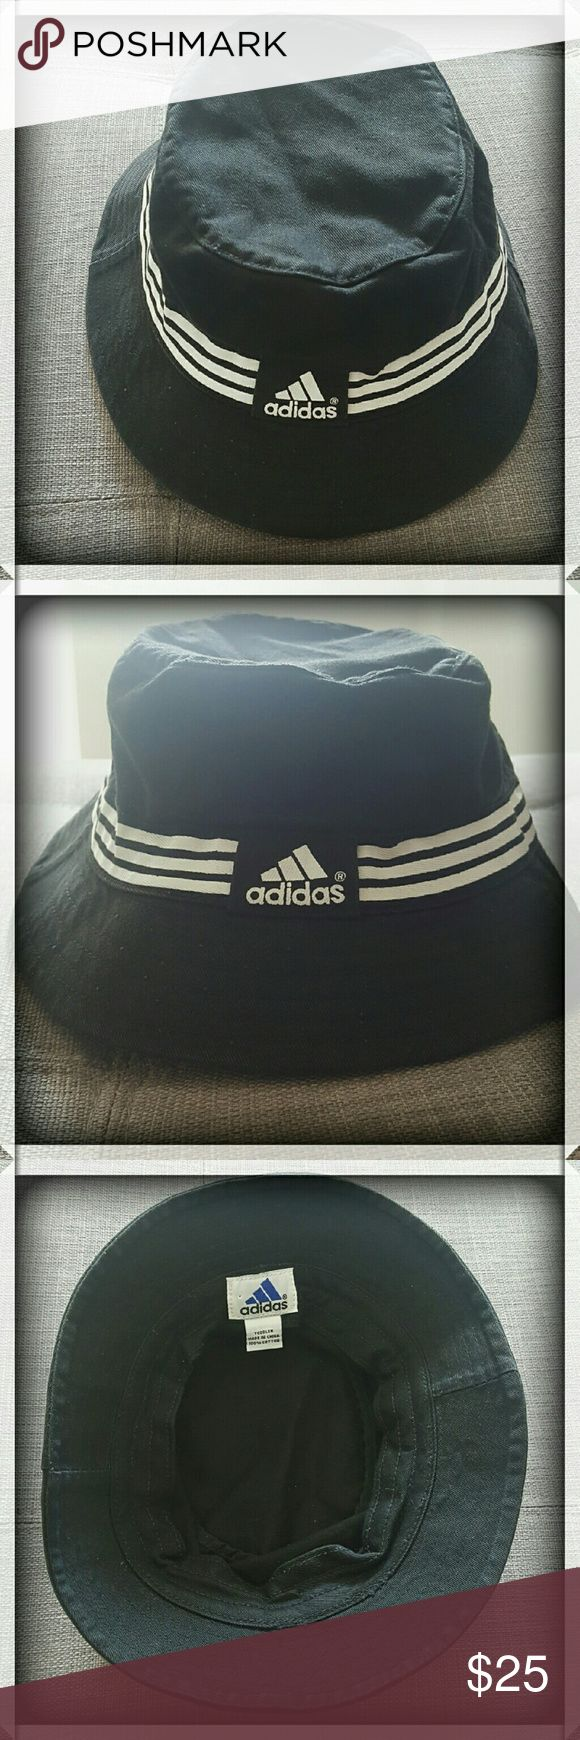 """Adidas Bucket Hat Rare black and white vintage Adidas bucket hat. Looks so cool on boys and girls. Takes you back to times of Run DMC and the Golden Age of Hip Hop. Really special hat that also protects your child from the sun. My son loved wearing this hat, but he grew out of it, unfortunately. Size says """"Toddler"""", I'd say up to two-year-old or less. Bundle with other items for discount. Please ask any questions before purchase. Adidas Accessories Hats"""